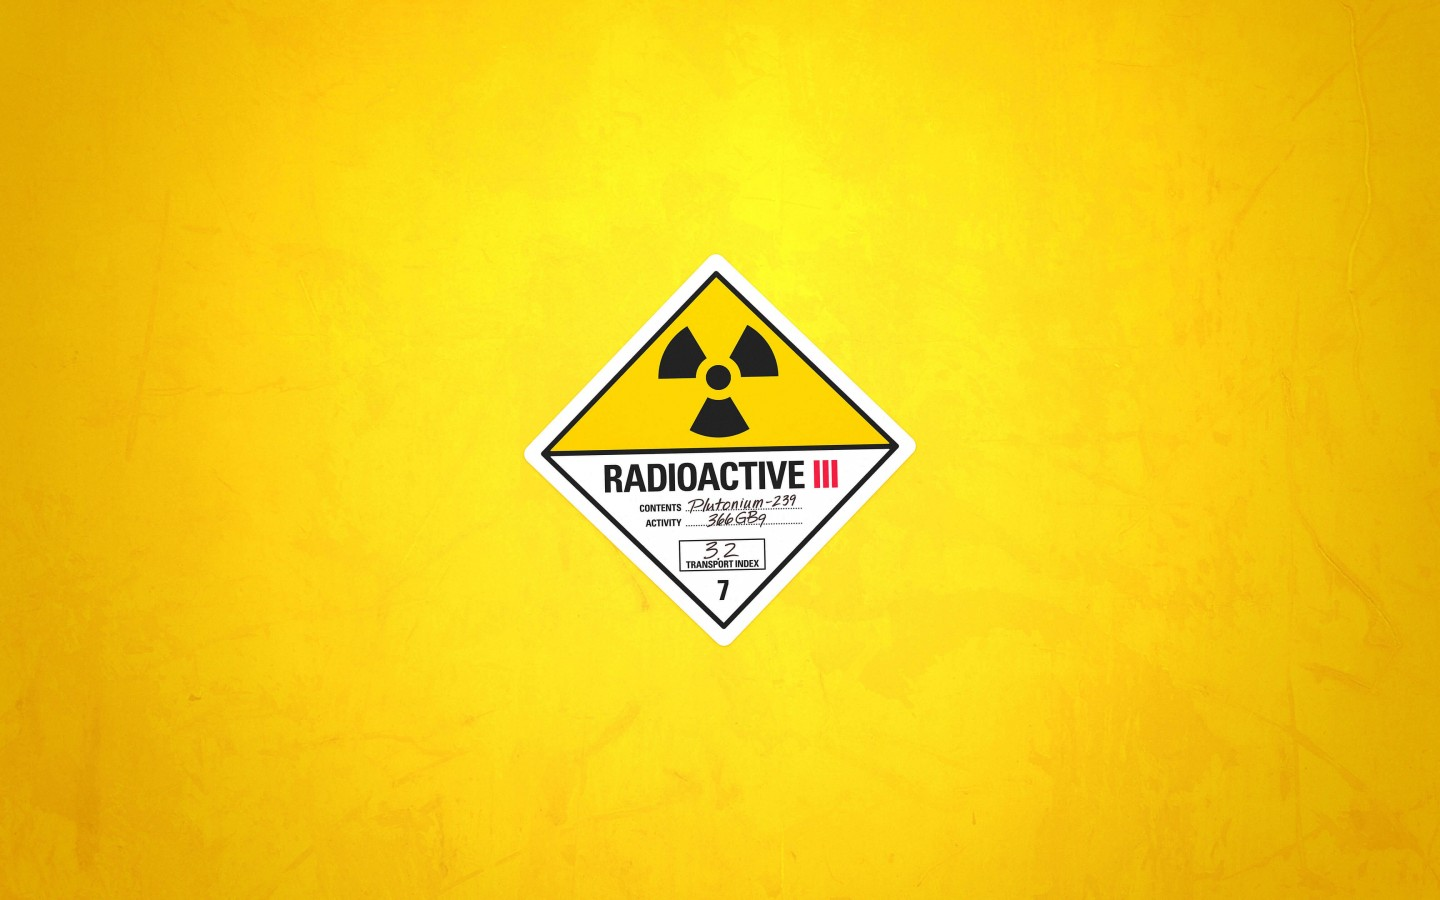 Radioactive Wallpaper for Desktop 1440x900